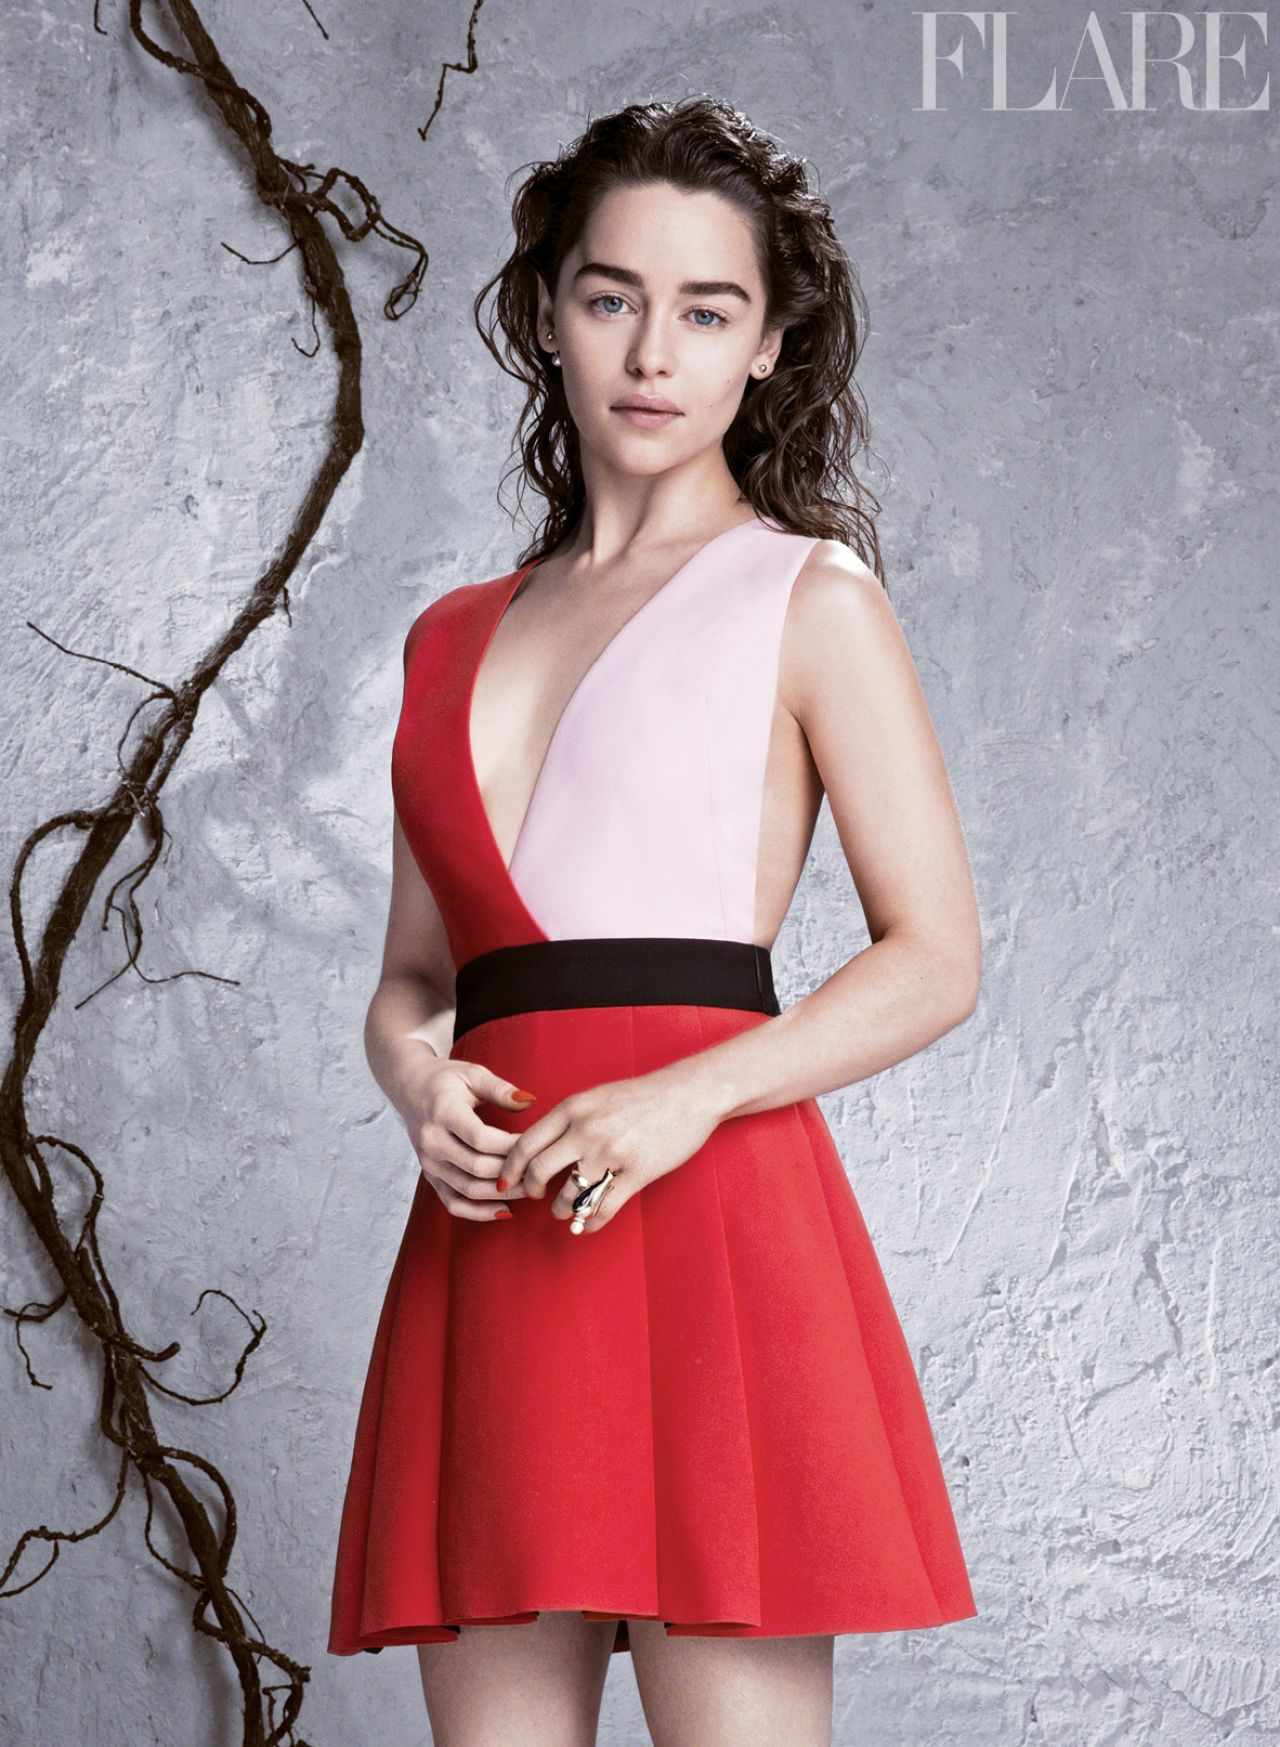 Emilia Clarke - Flare Magazine (Canada) - April 2014 Issue